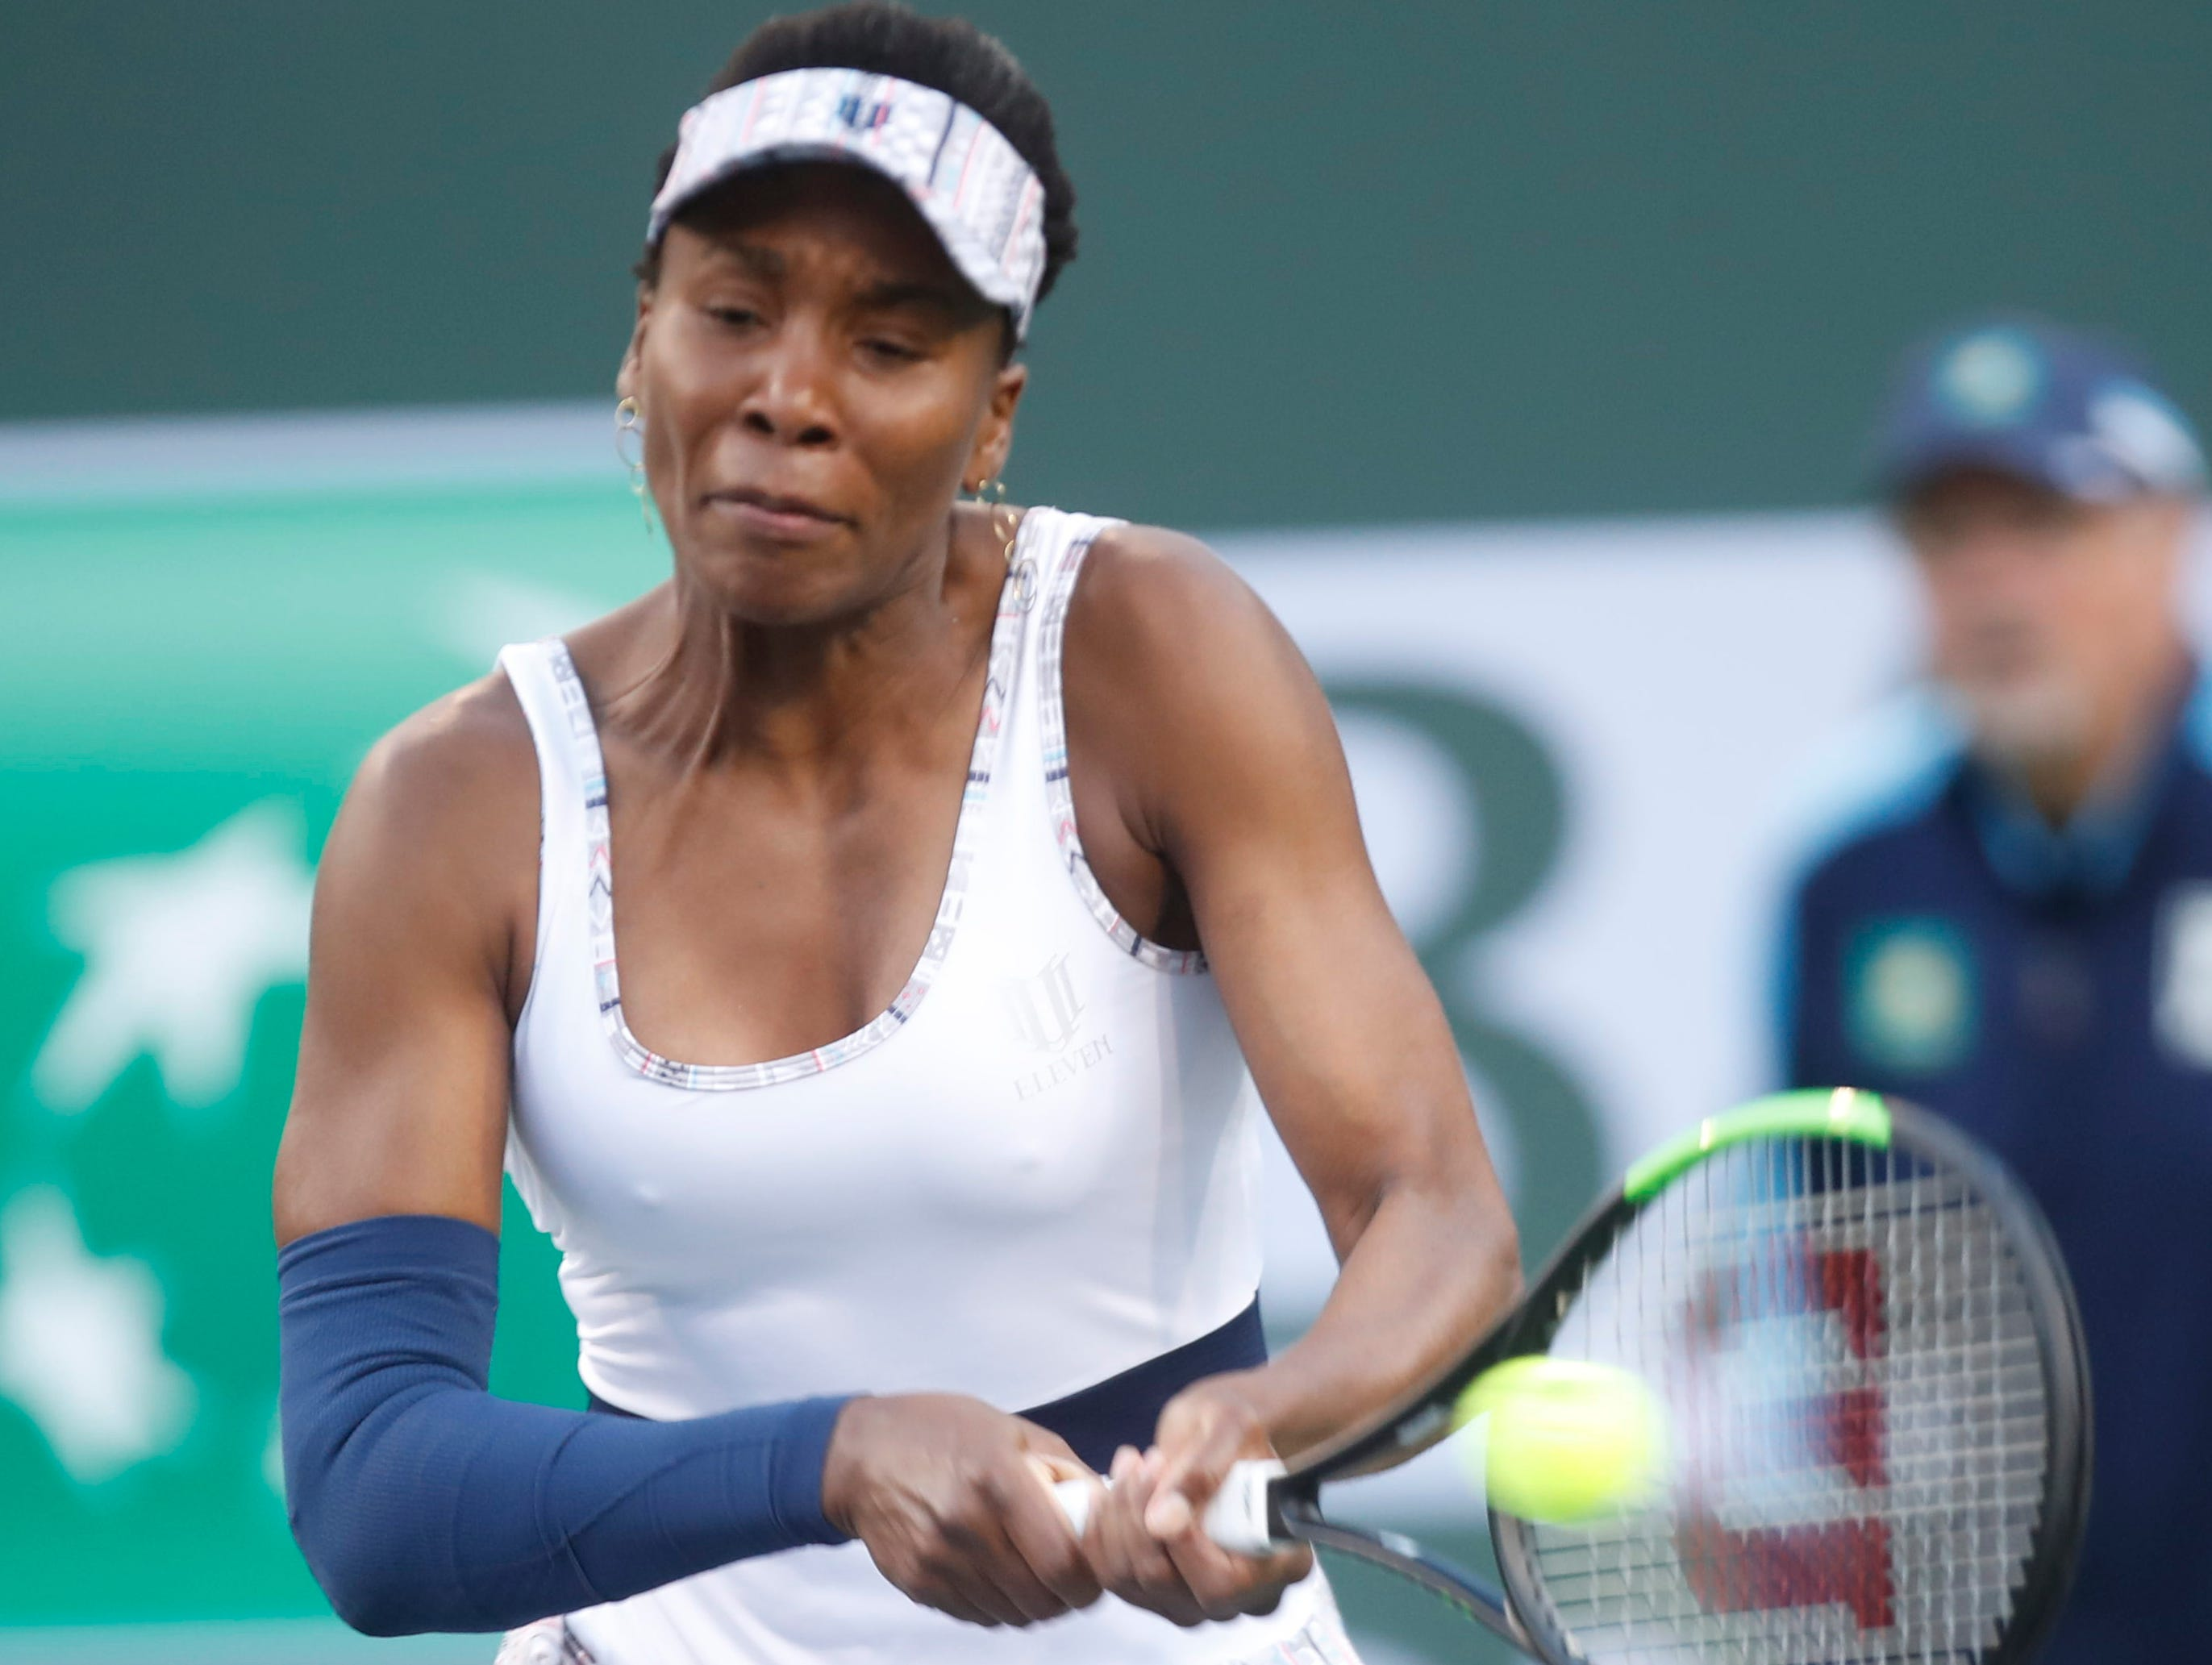 Venus Williams returns a shot to Mona Barthel  on Stadium One at the 2019 BNP Paribas Open at Indian Wells Tennis Garden on March 12, 2019. Williams won the match 6-4, 6-4.